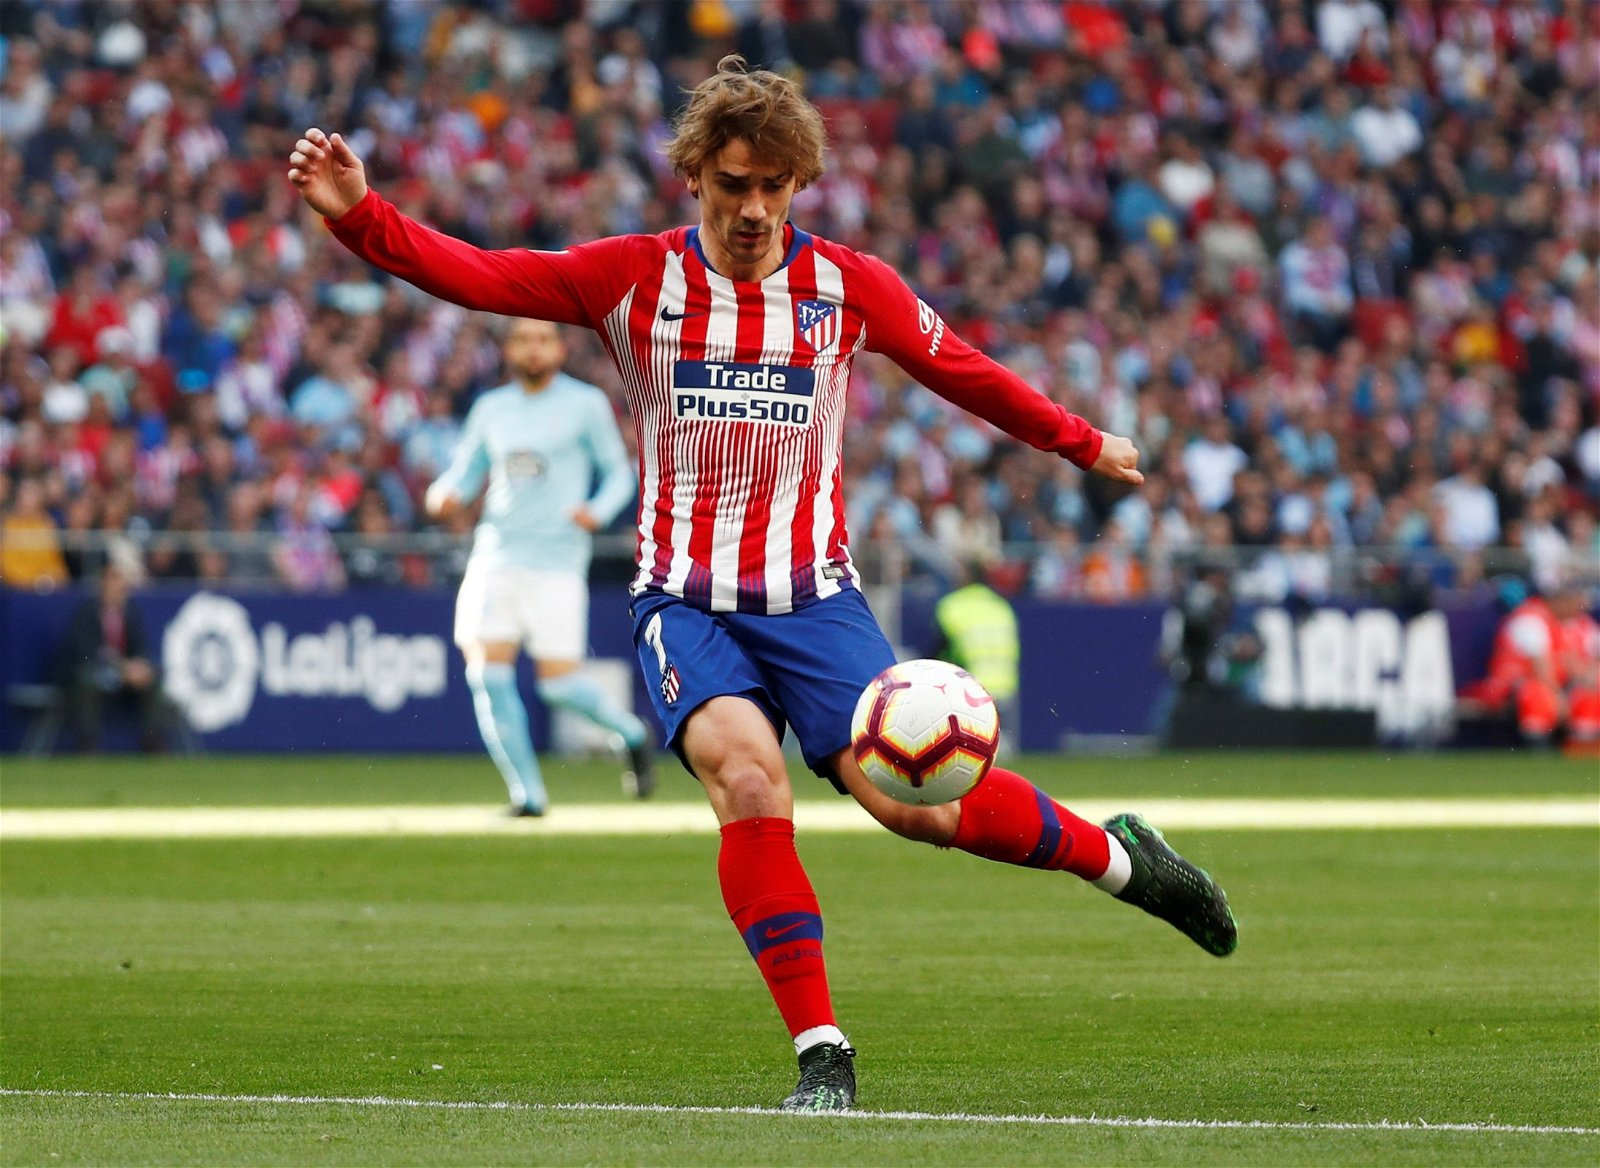 Antoine Griezmann in action for Atletico Madrid